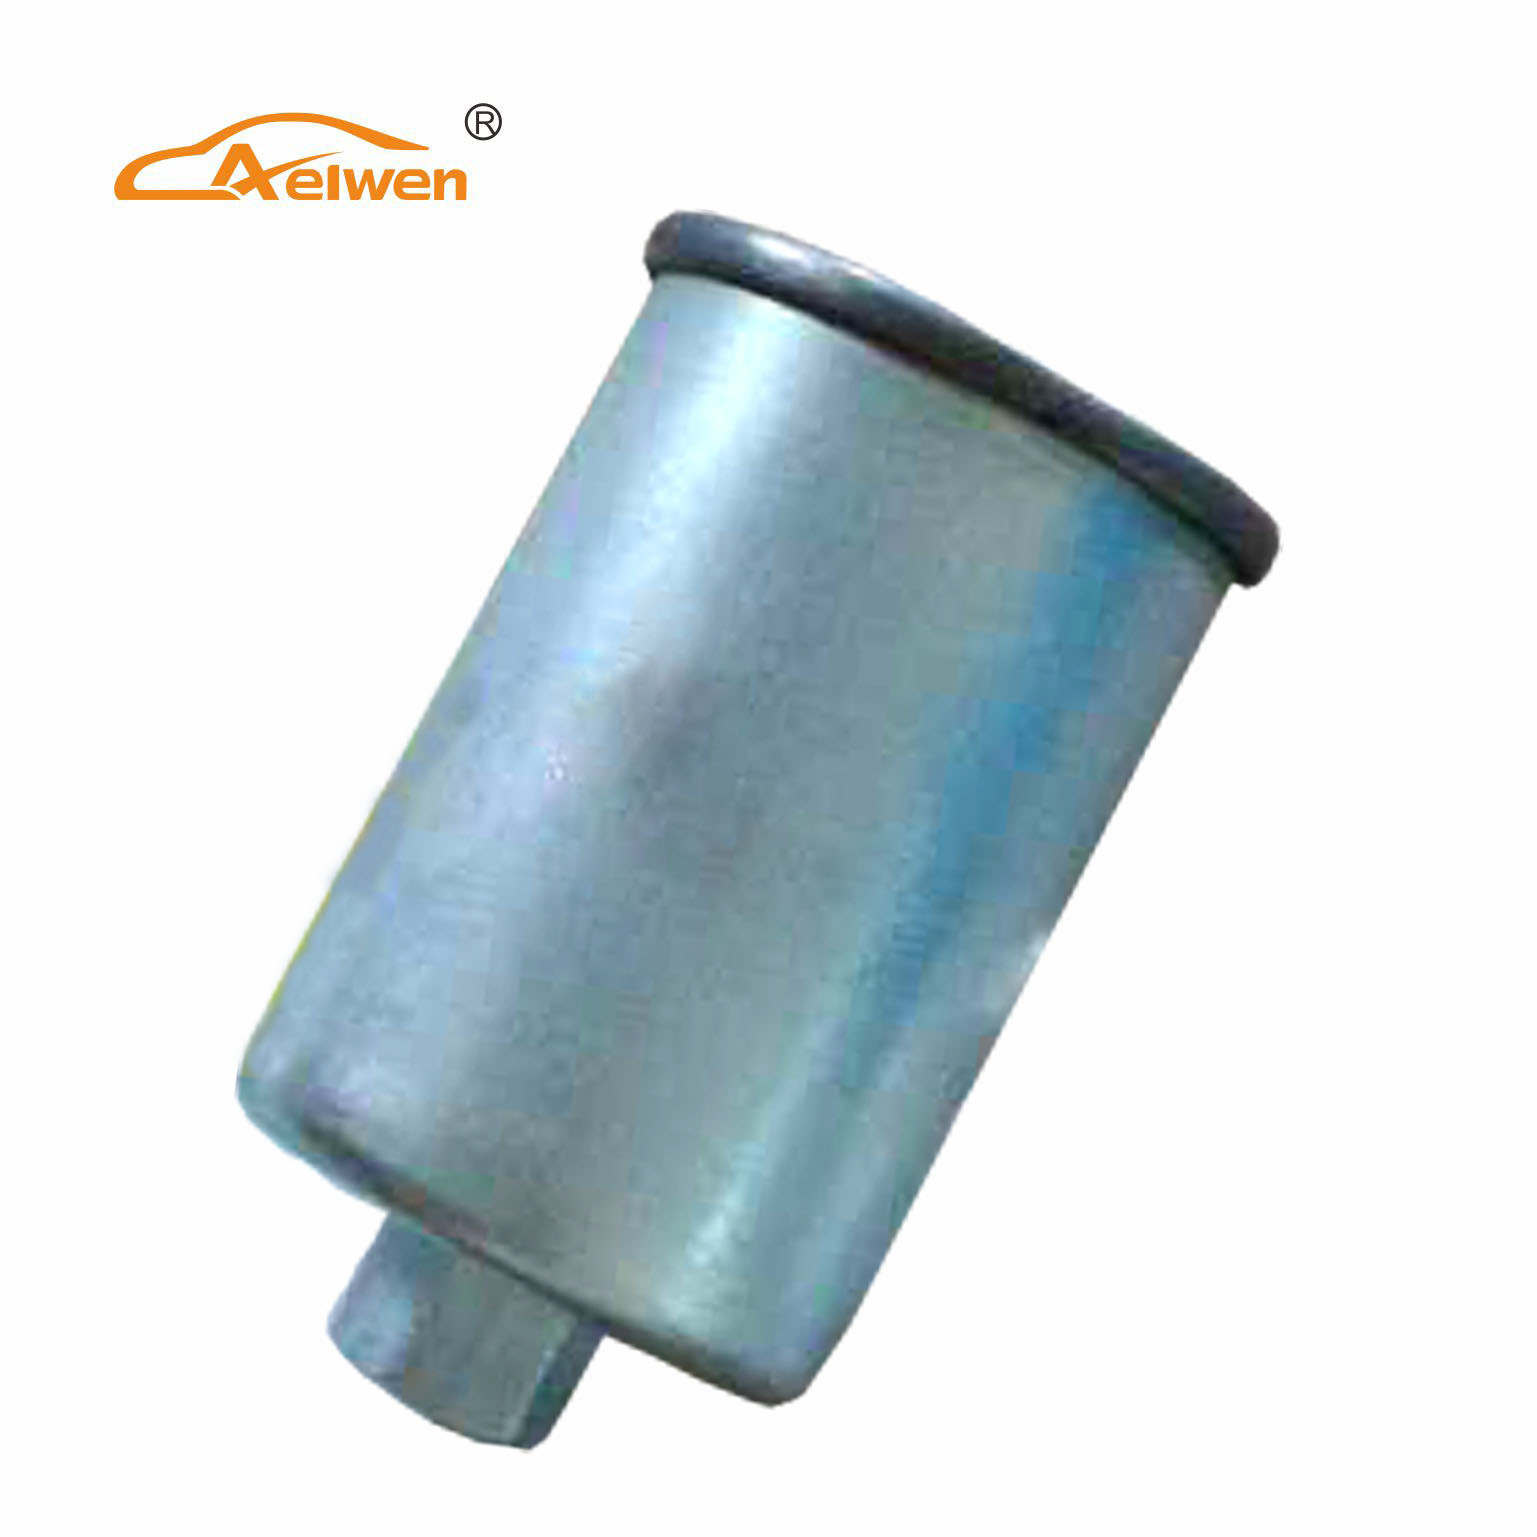 China Fig7023 Aelwen High Quality Fuel Filter for Hyundai Accent - China Fuel  Filter, Fig7023